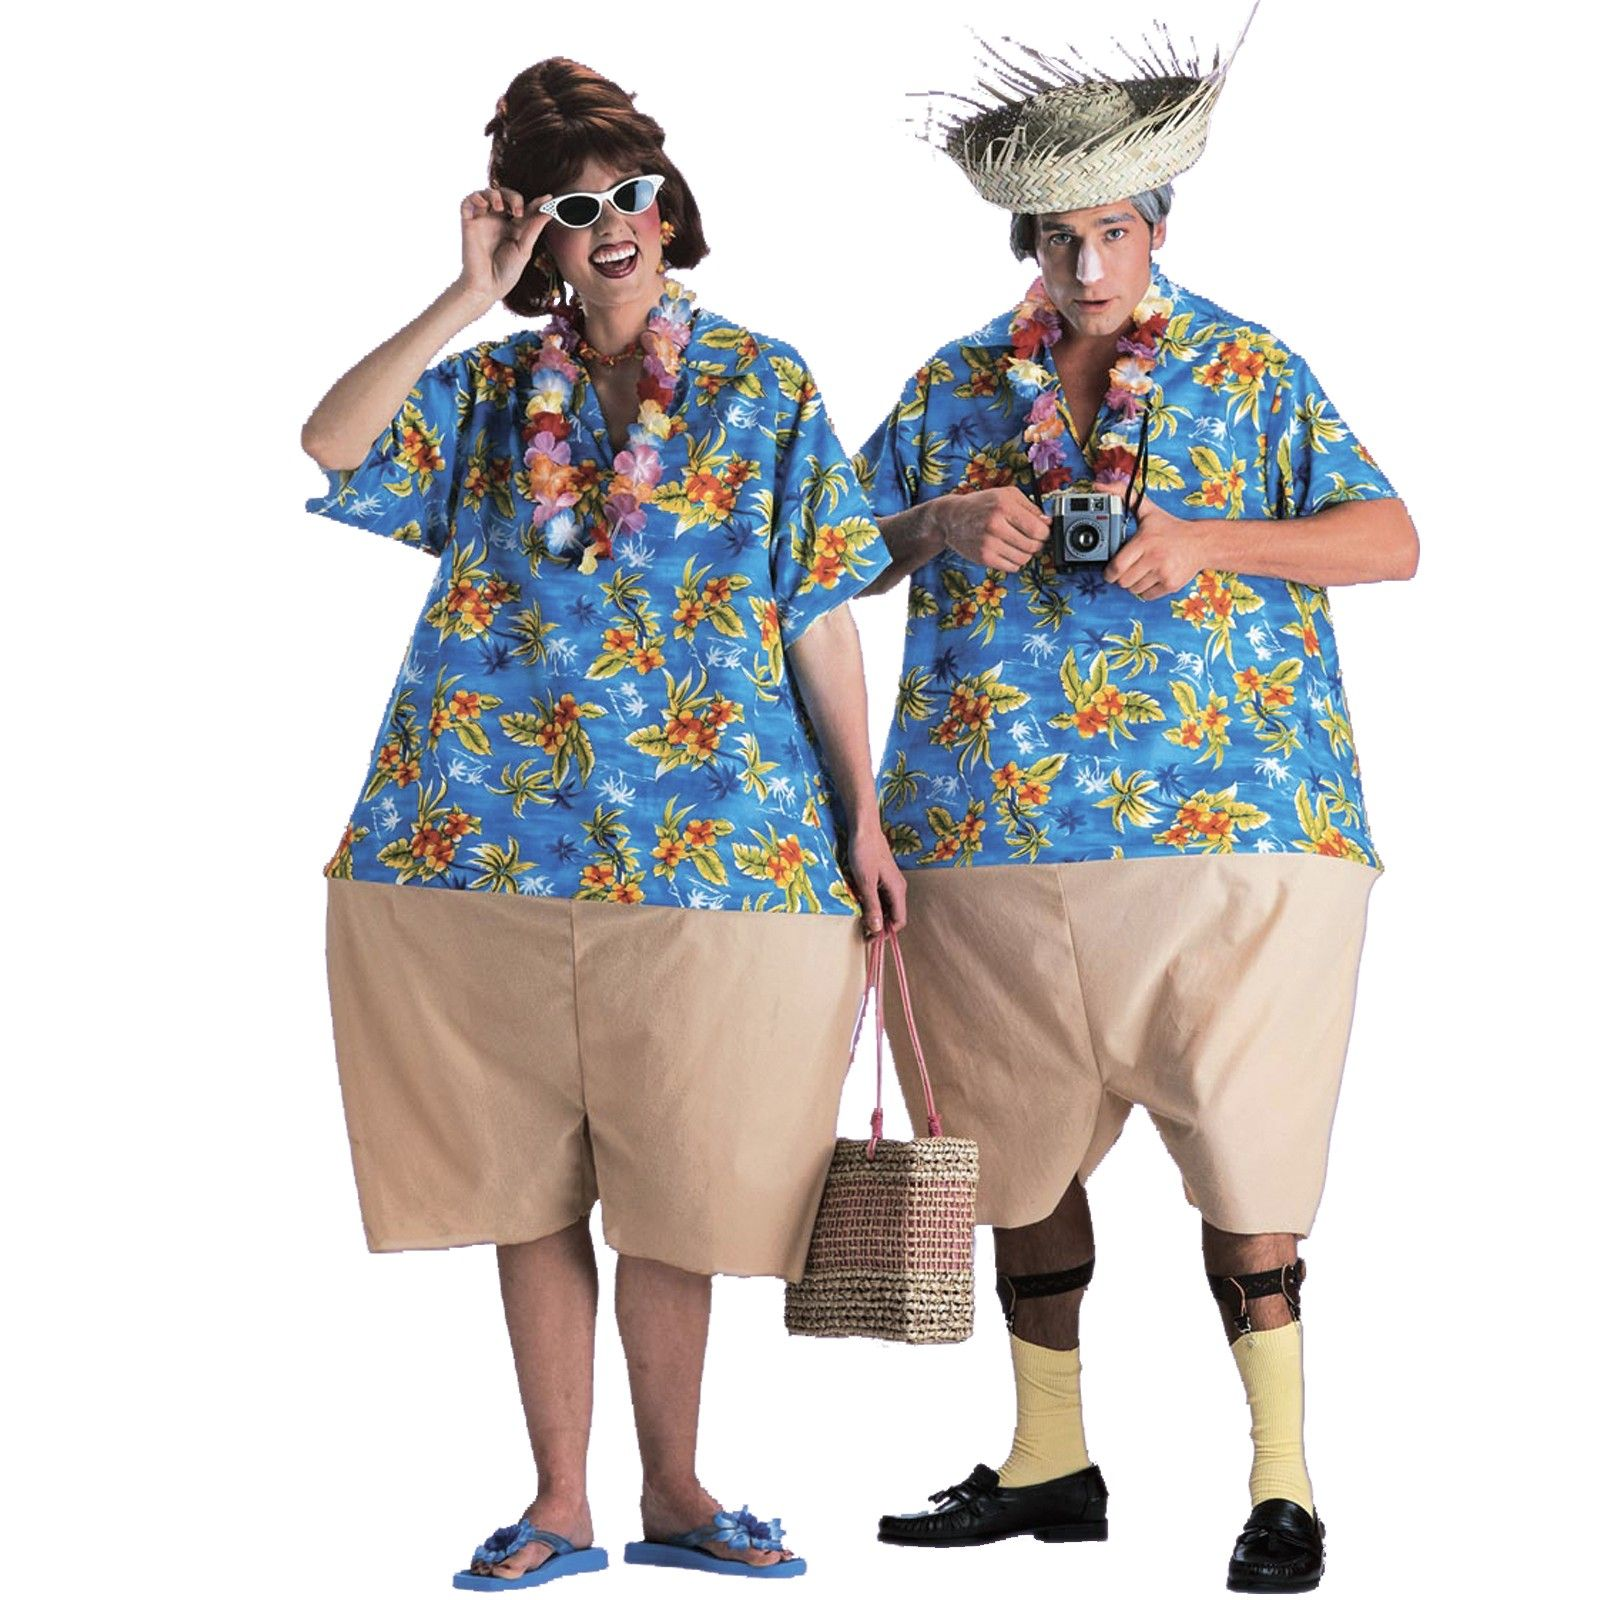 Tacky Traveler Costume Tourists Costumes Ideasfunny